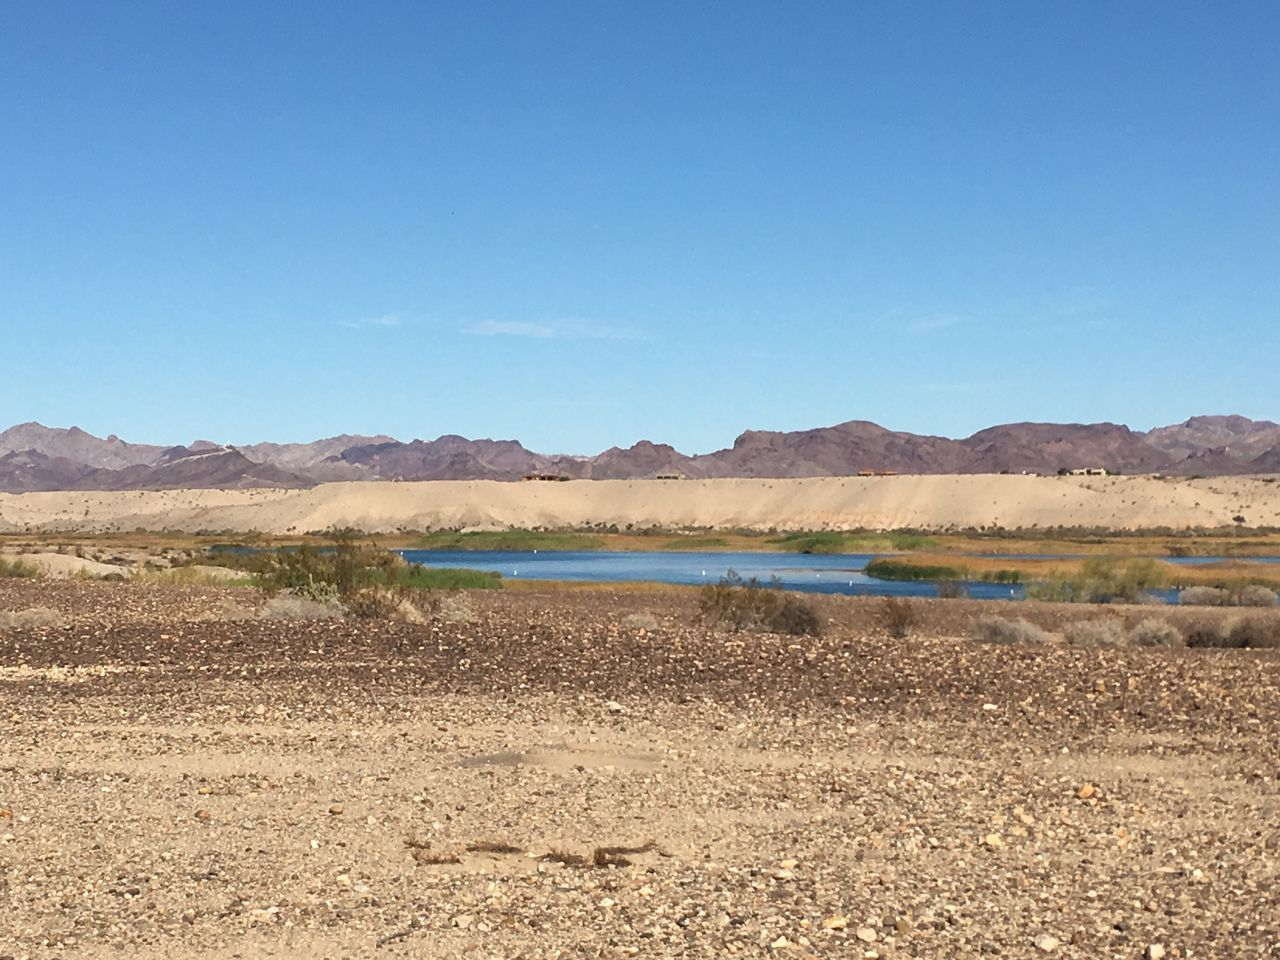 Mountain Range Desert Clear Sky Arid Climate No People Sand Water Landscape Scenics Nature Day Tranquil Scene River Mouth Wilderness Area